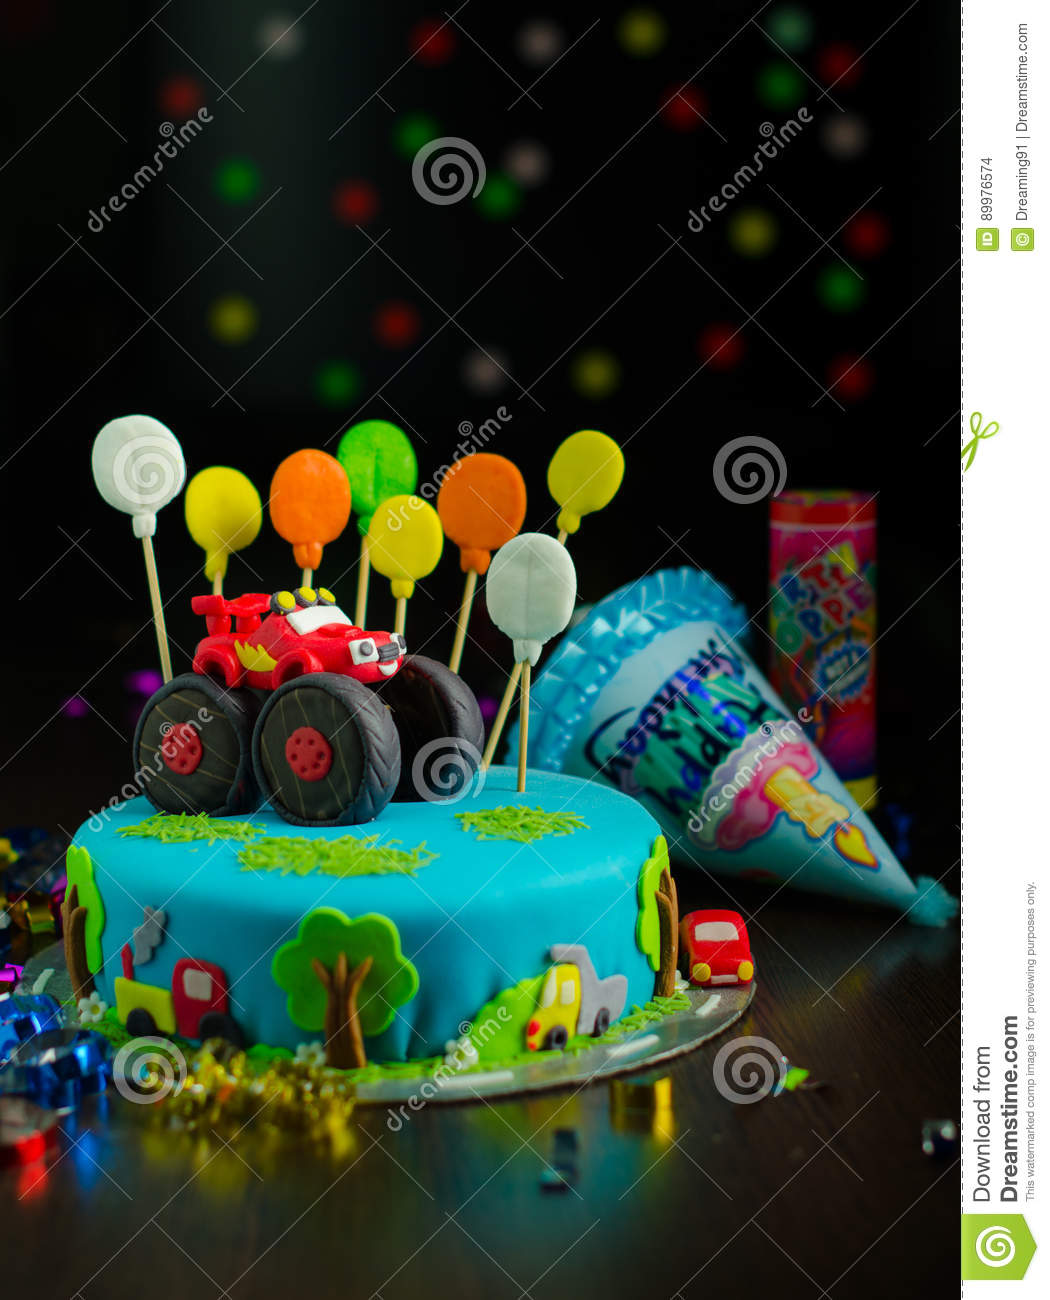 Birthday Cake With Red Car And Colorful Balloons On Top On The Bokeh